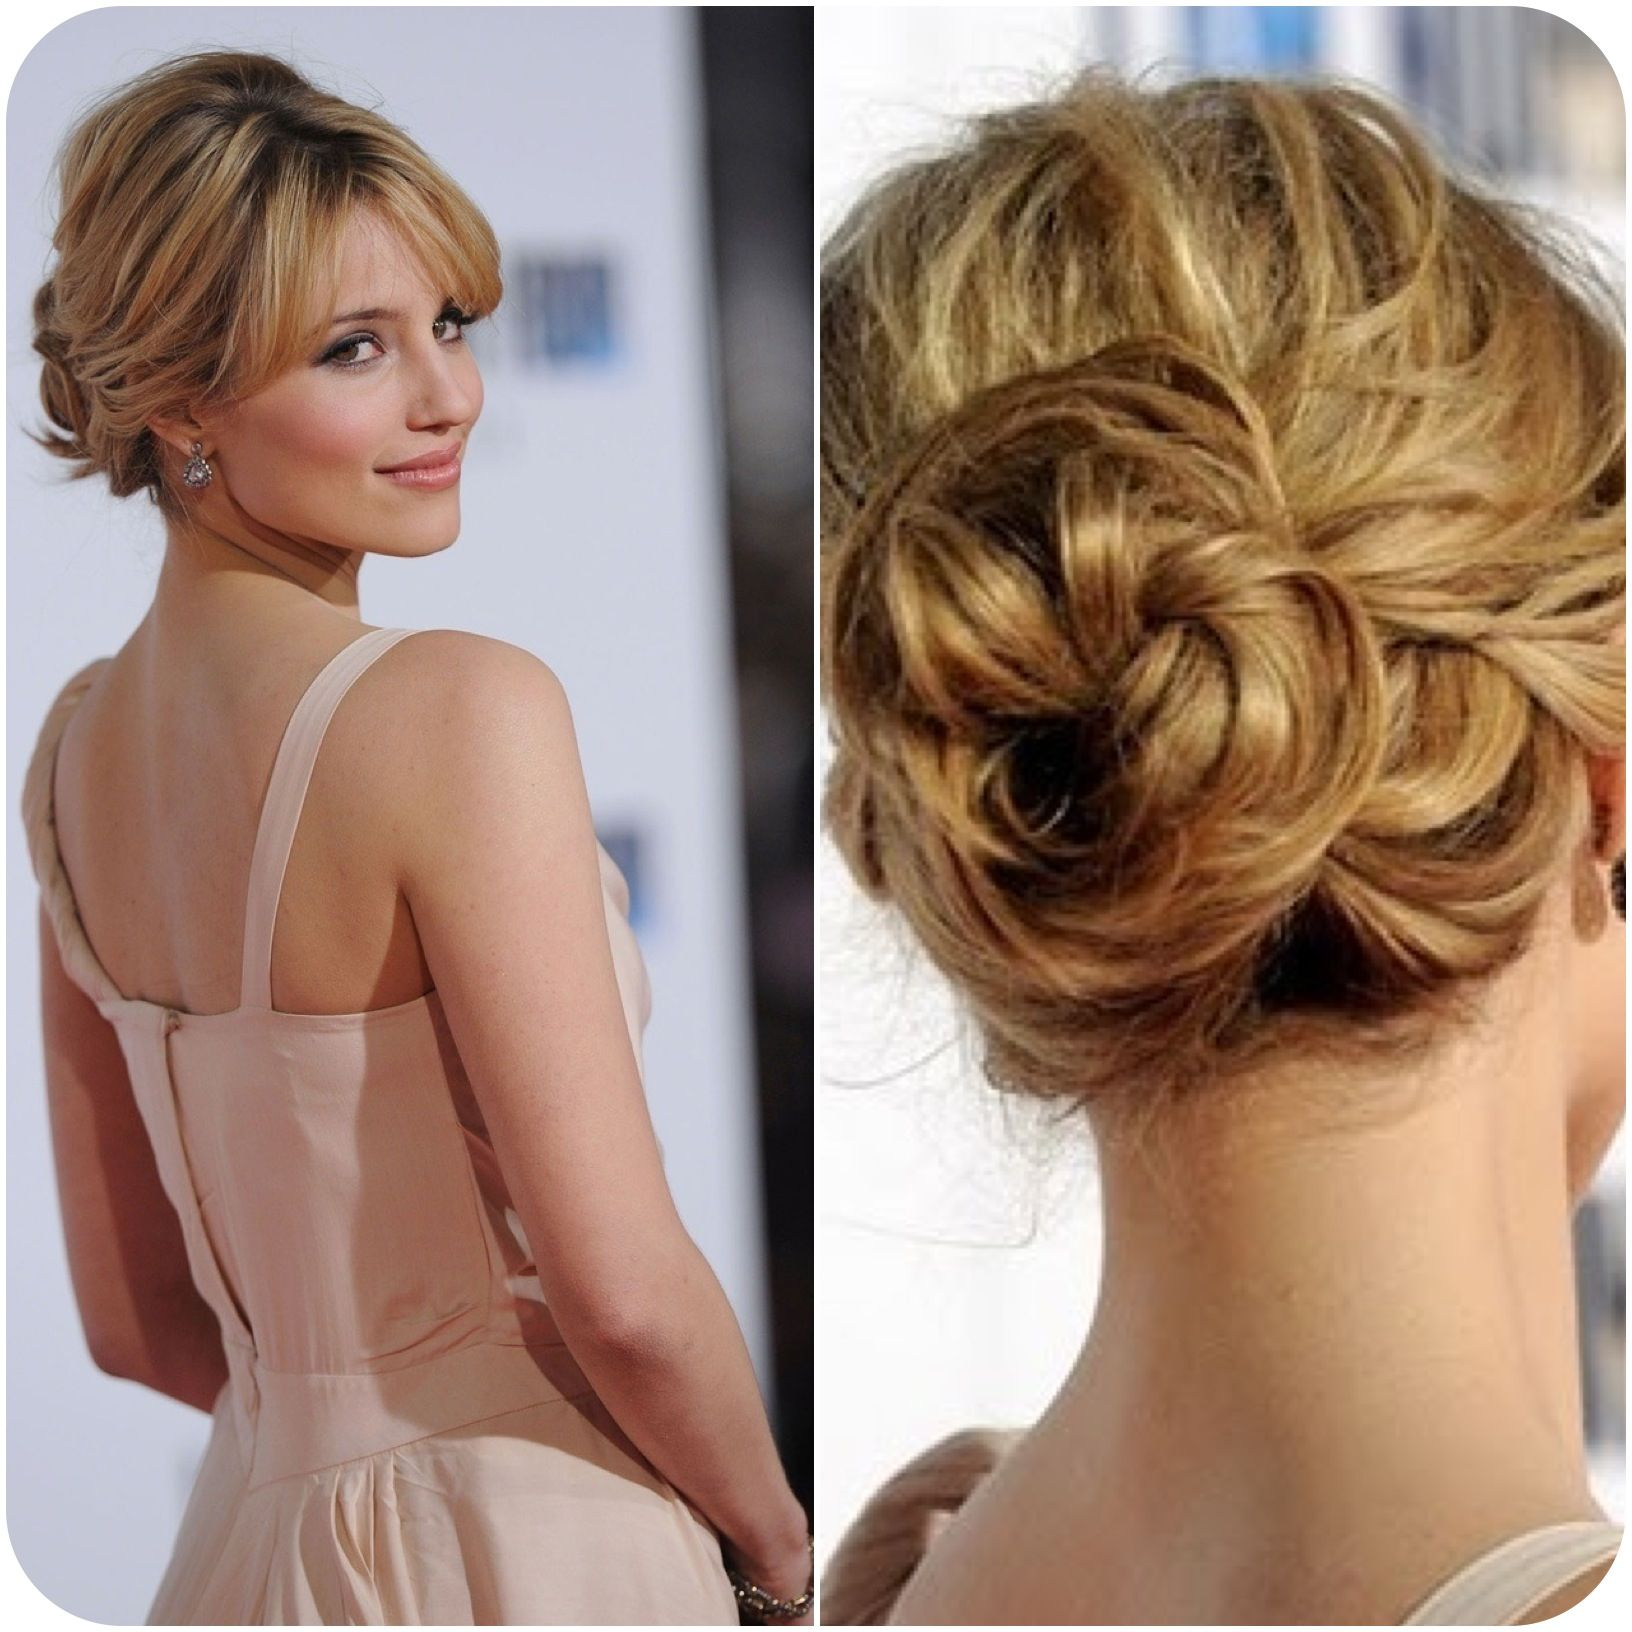 Dianna Agron Romantic Updo With Bangs Hair Pinterest Wedding